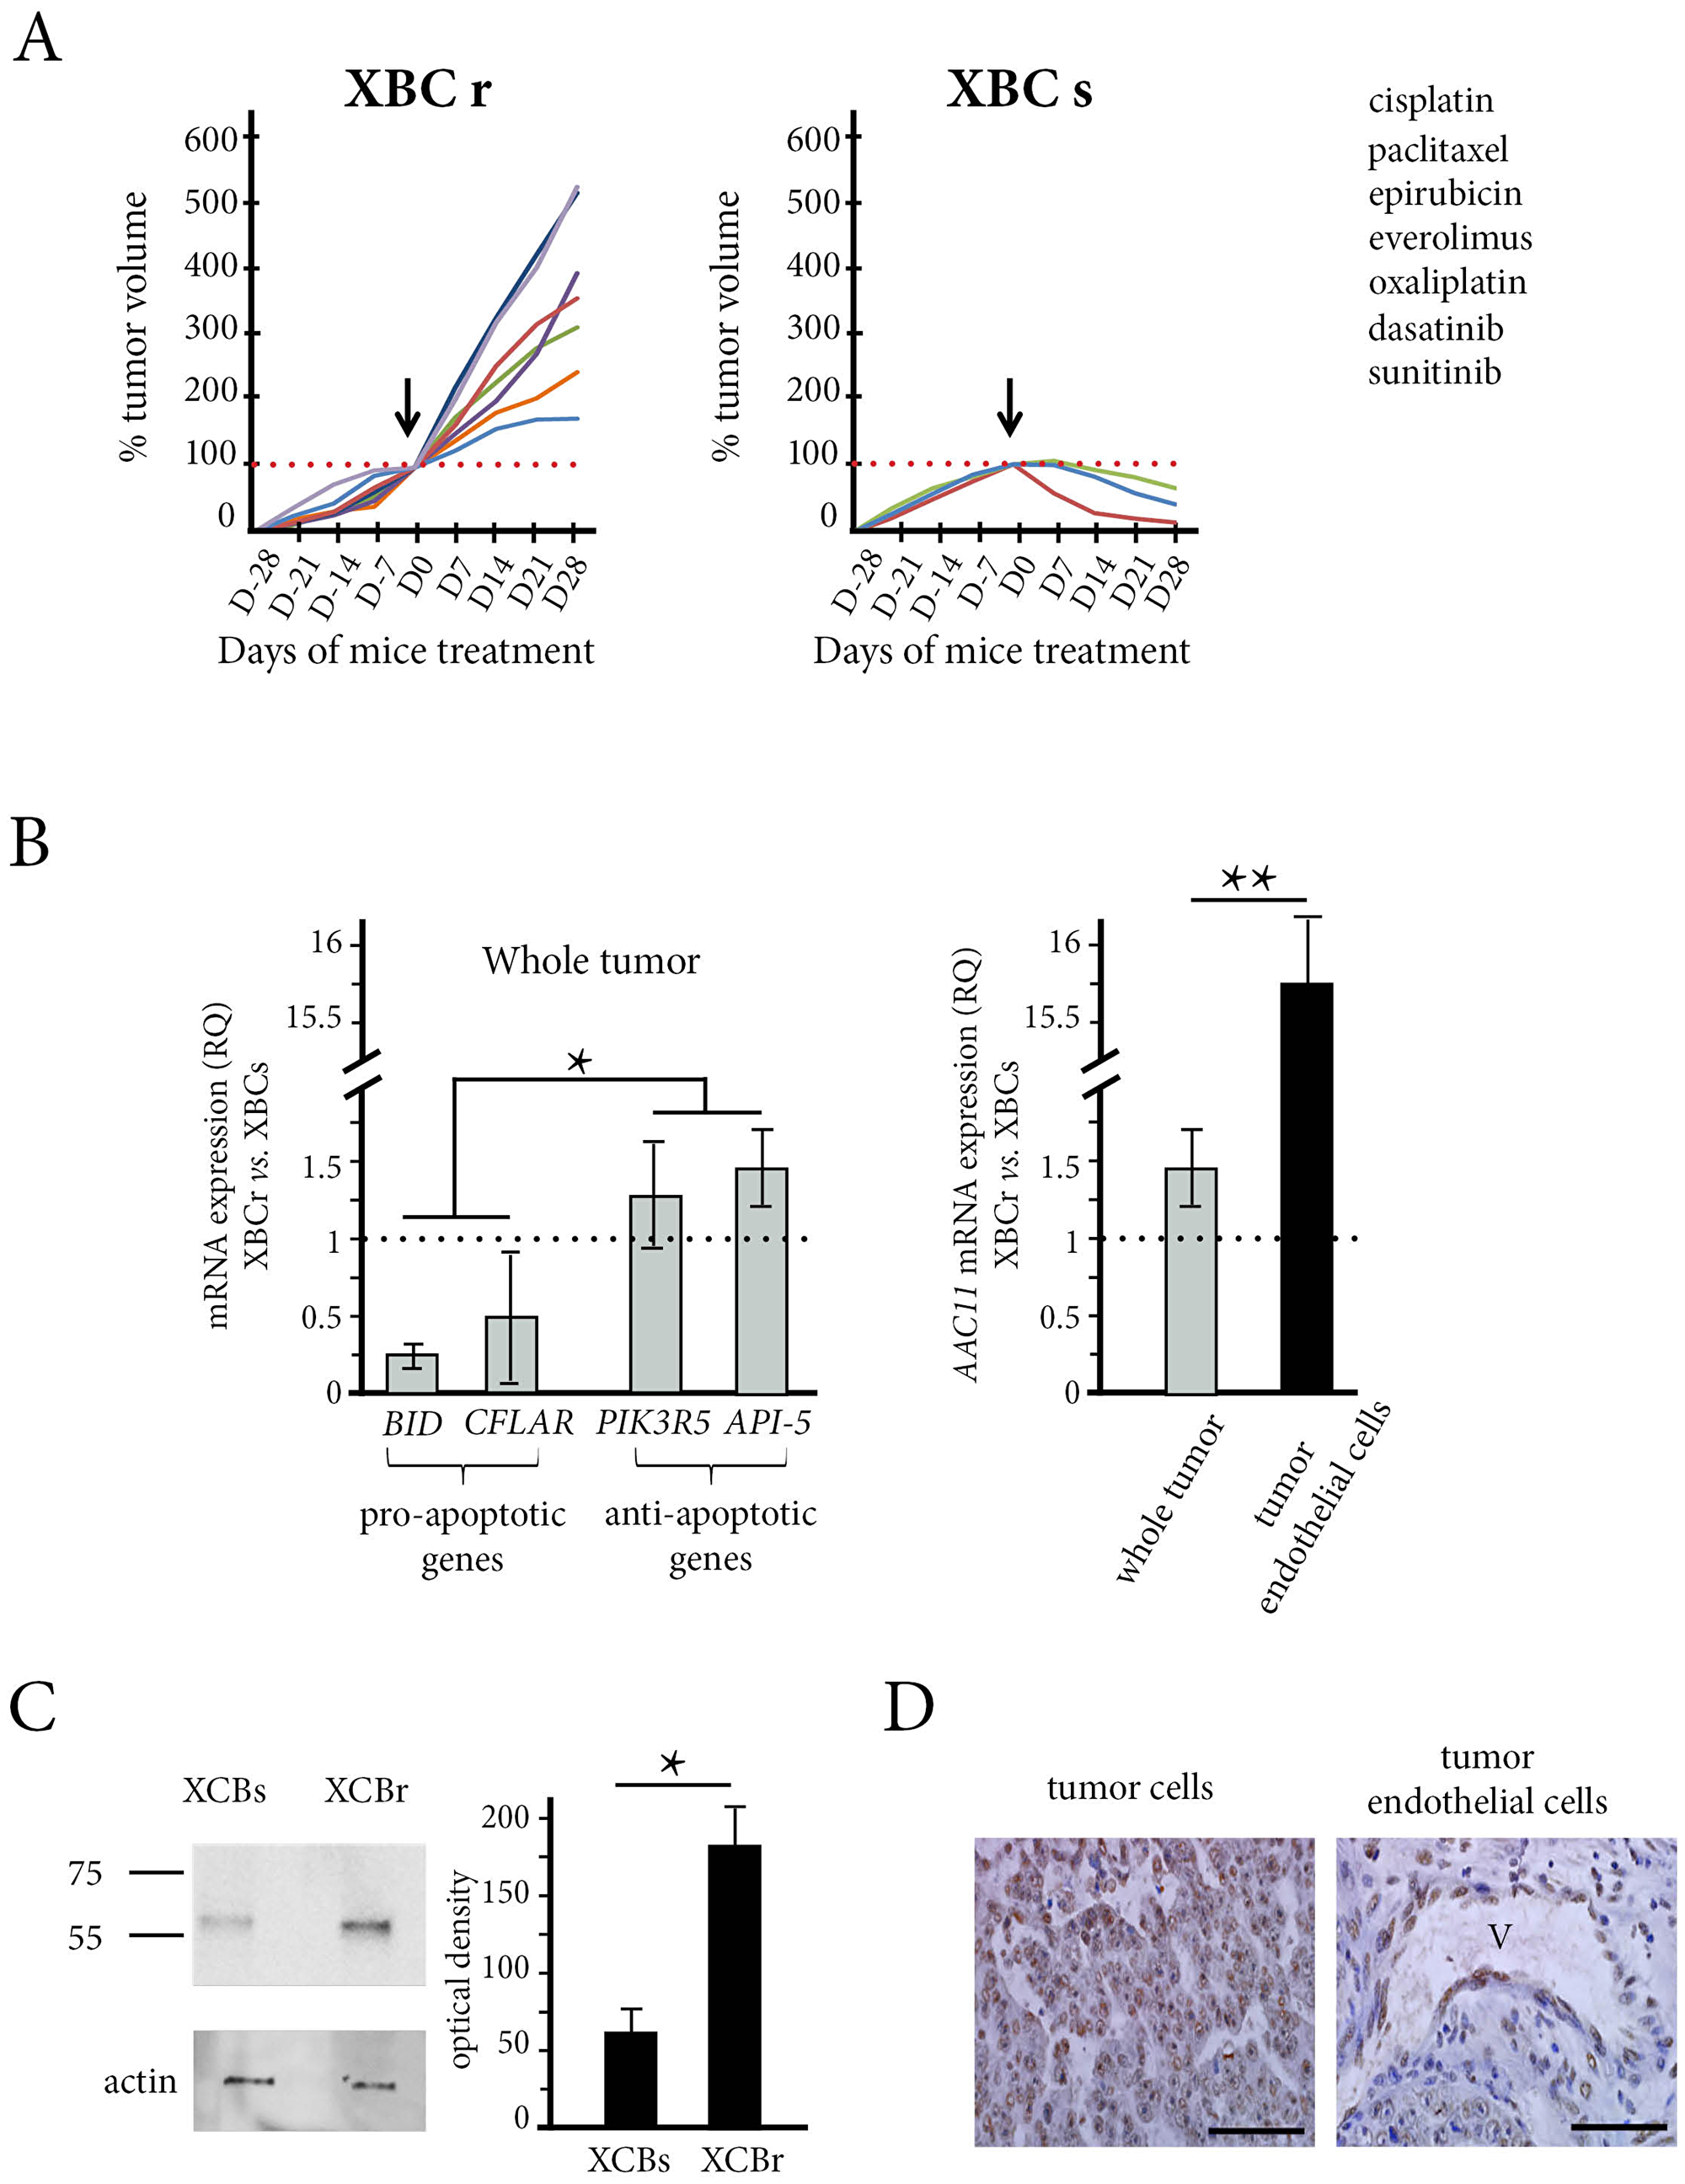 The in vivo effect of chemotherapy and API-5 expression in the patient xenograft model obtained from resistant tumors (XBC-R right panel) and sensitive tumors (XBC-S, left panel).